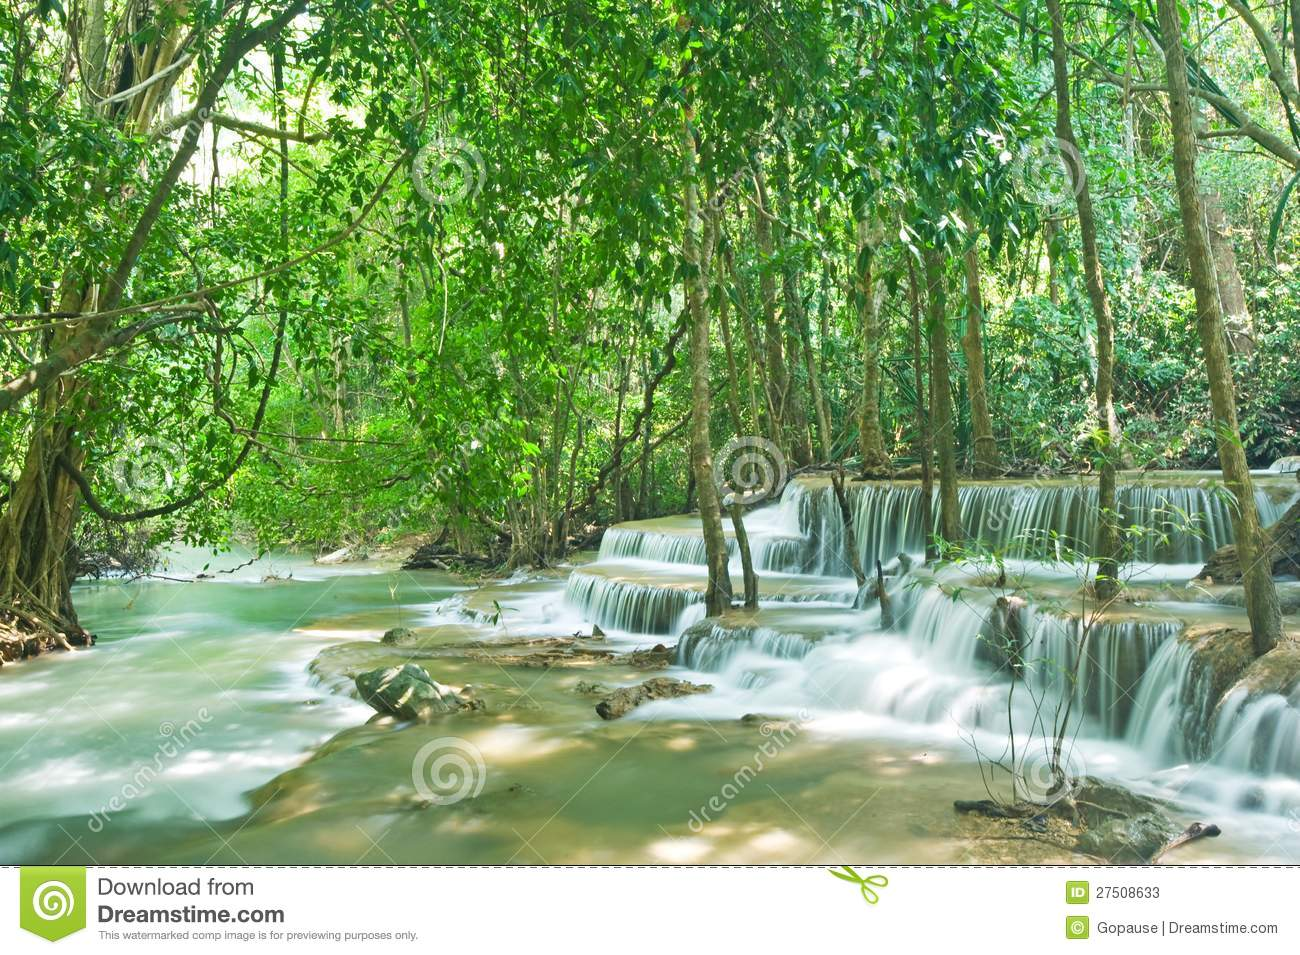 Tropical Waterfall In Forest Stock Photos - Image: 27508633